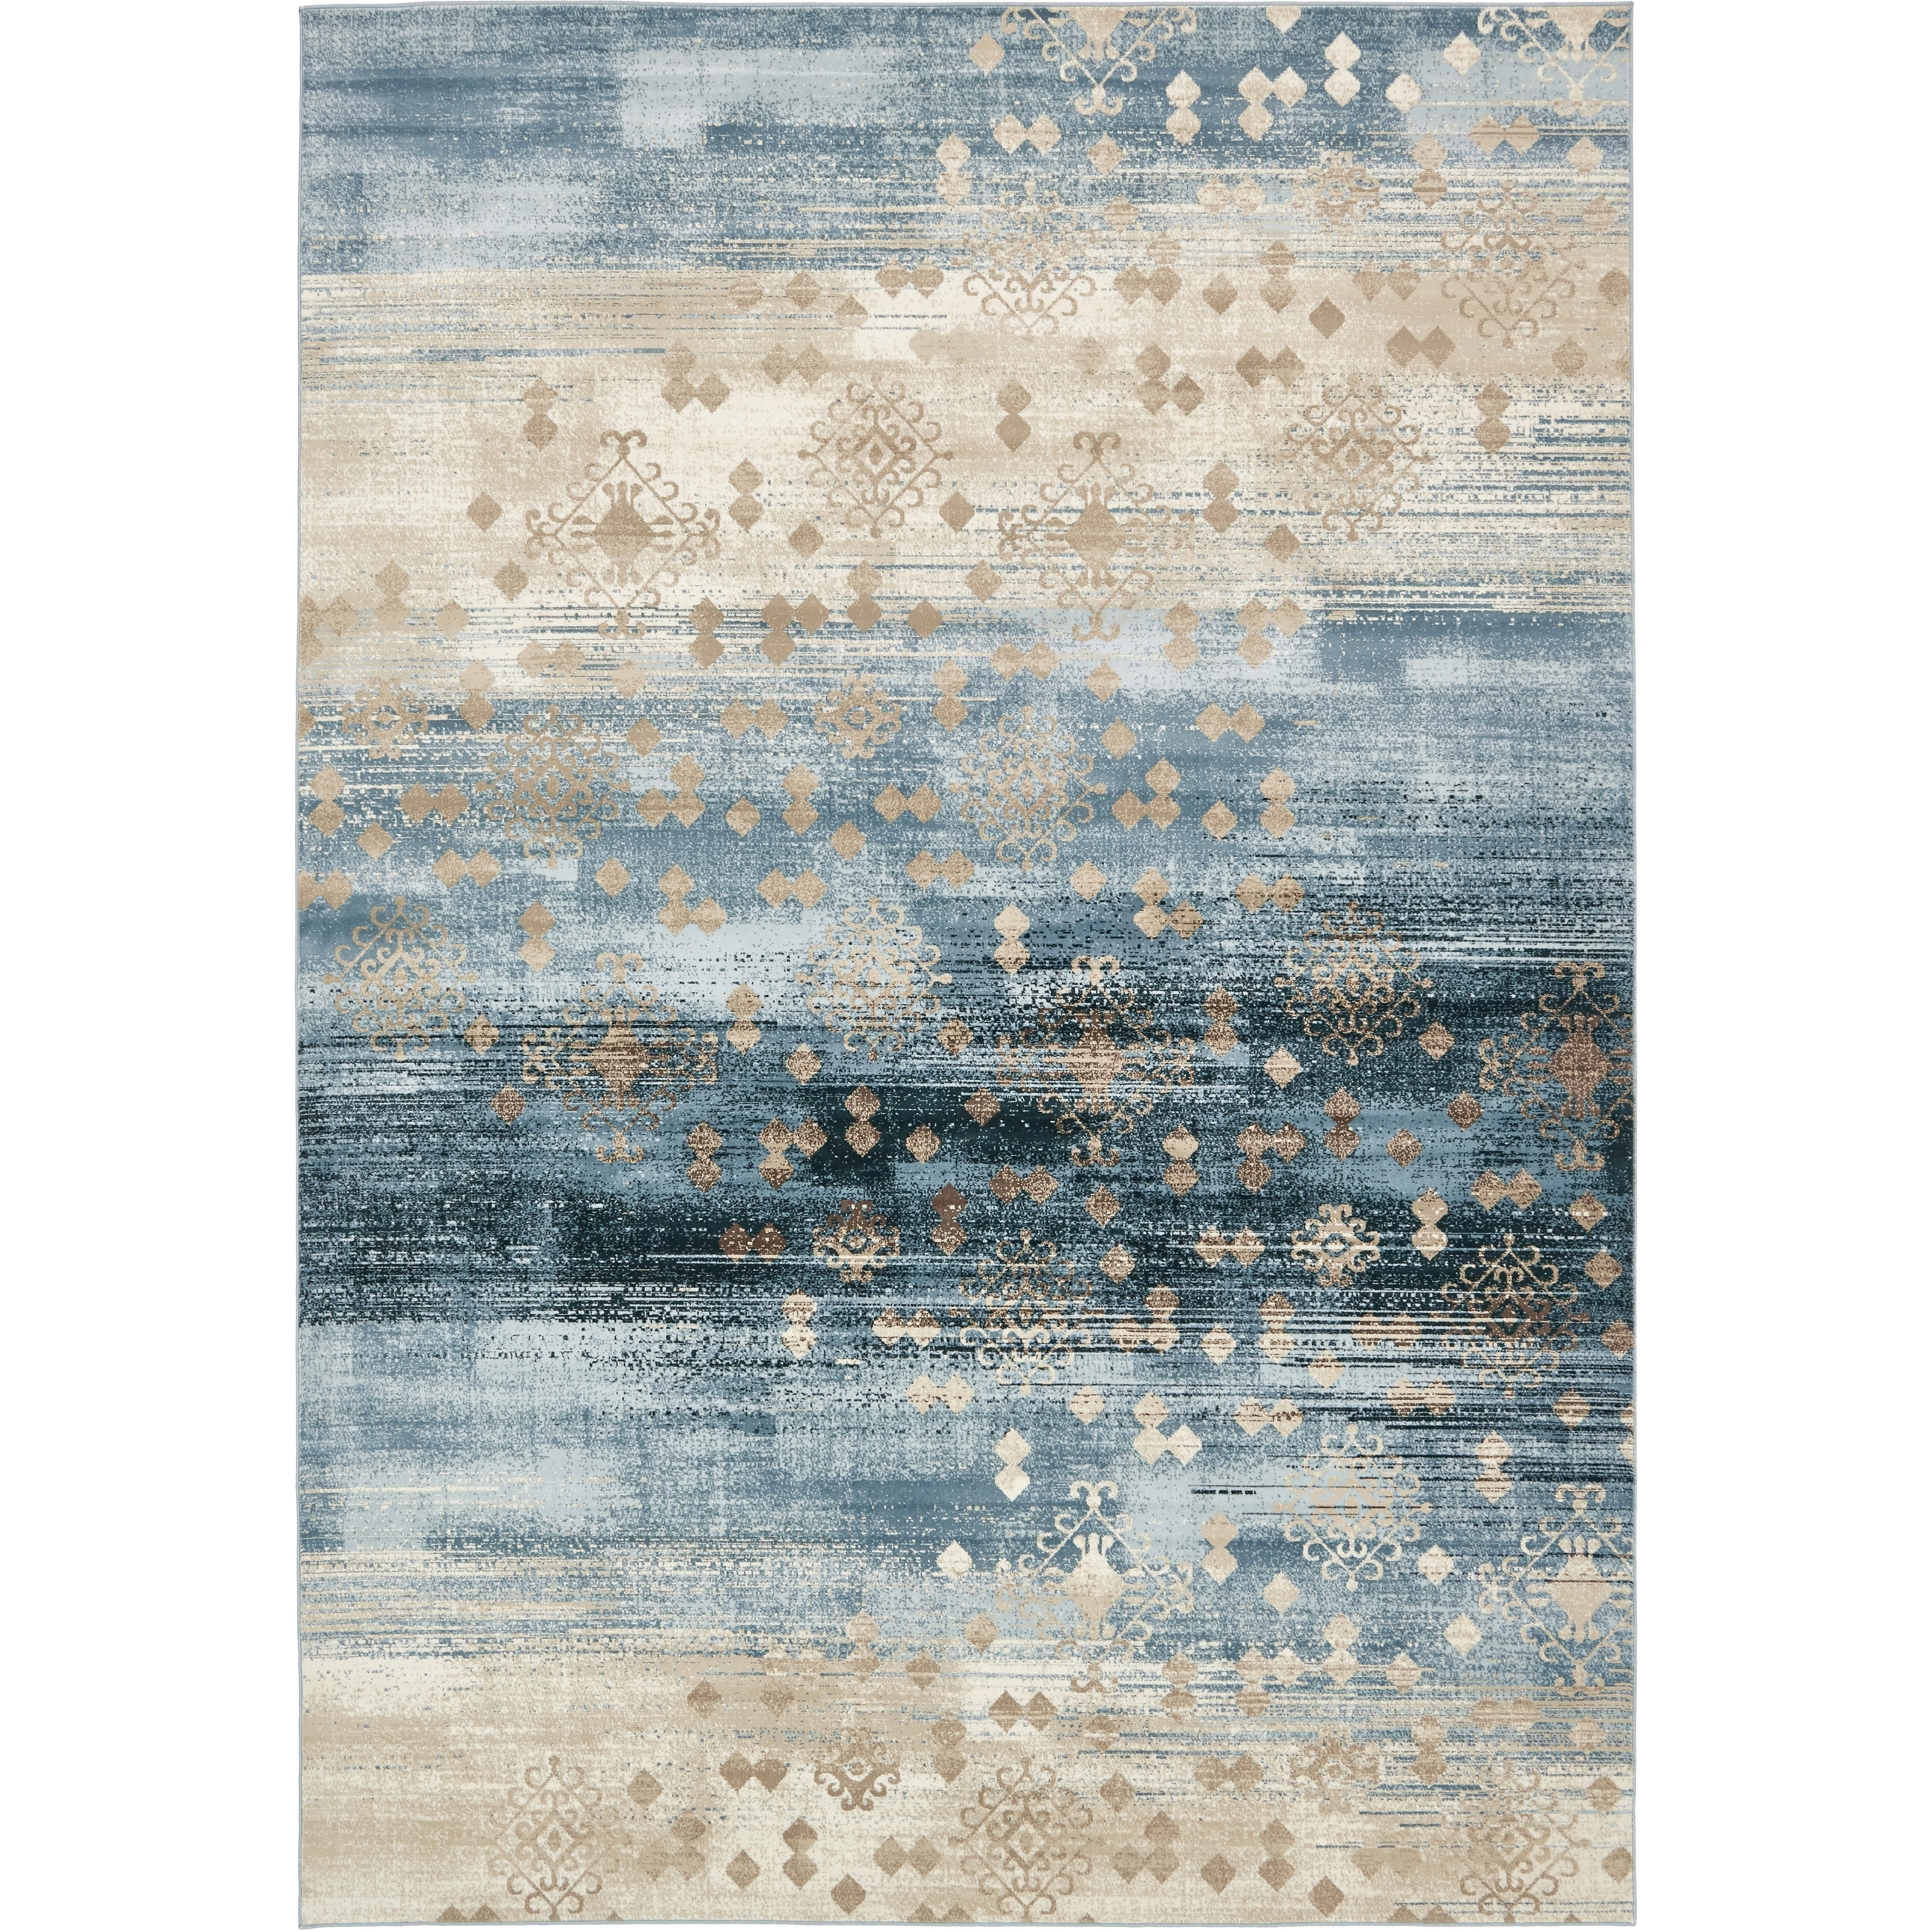 Teal Area Rug 8x10 Area Rug Ideas